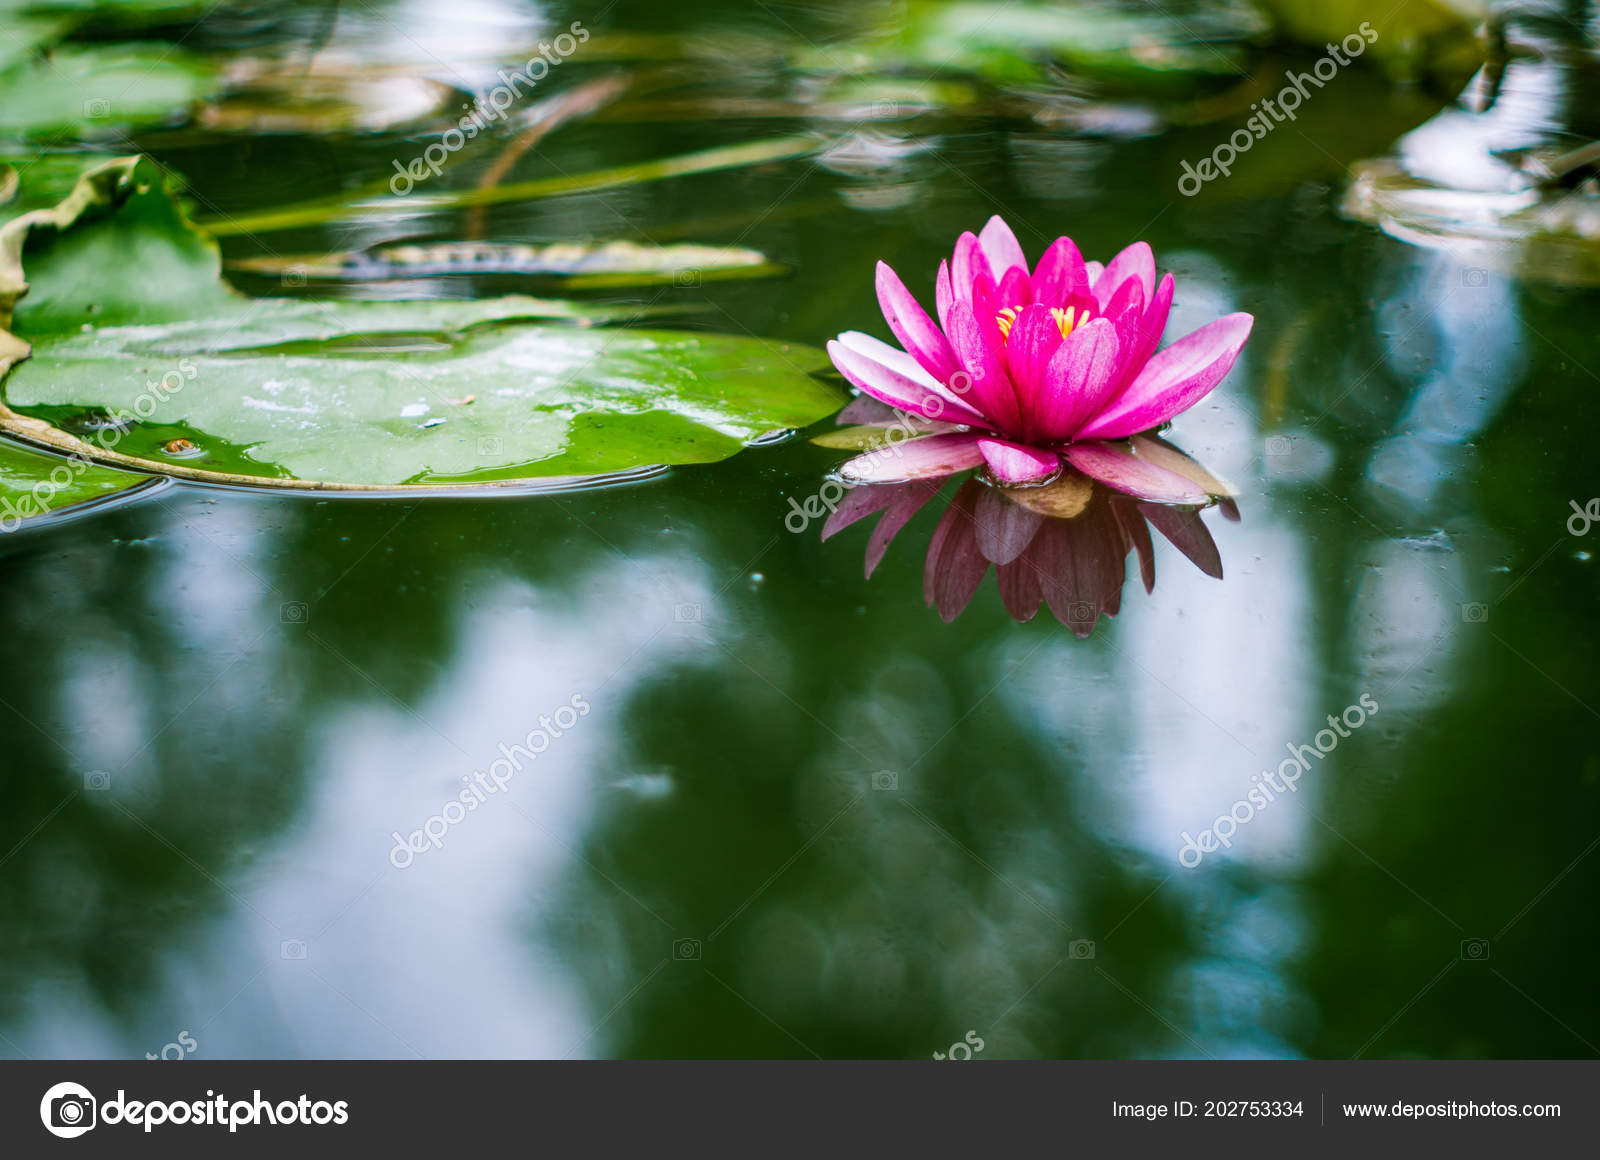 Flower Water Lily Pond Stock Photo Vadikovskiygmail 202753334